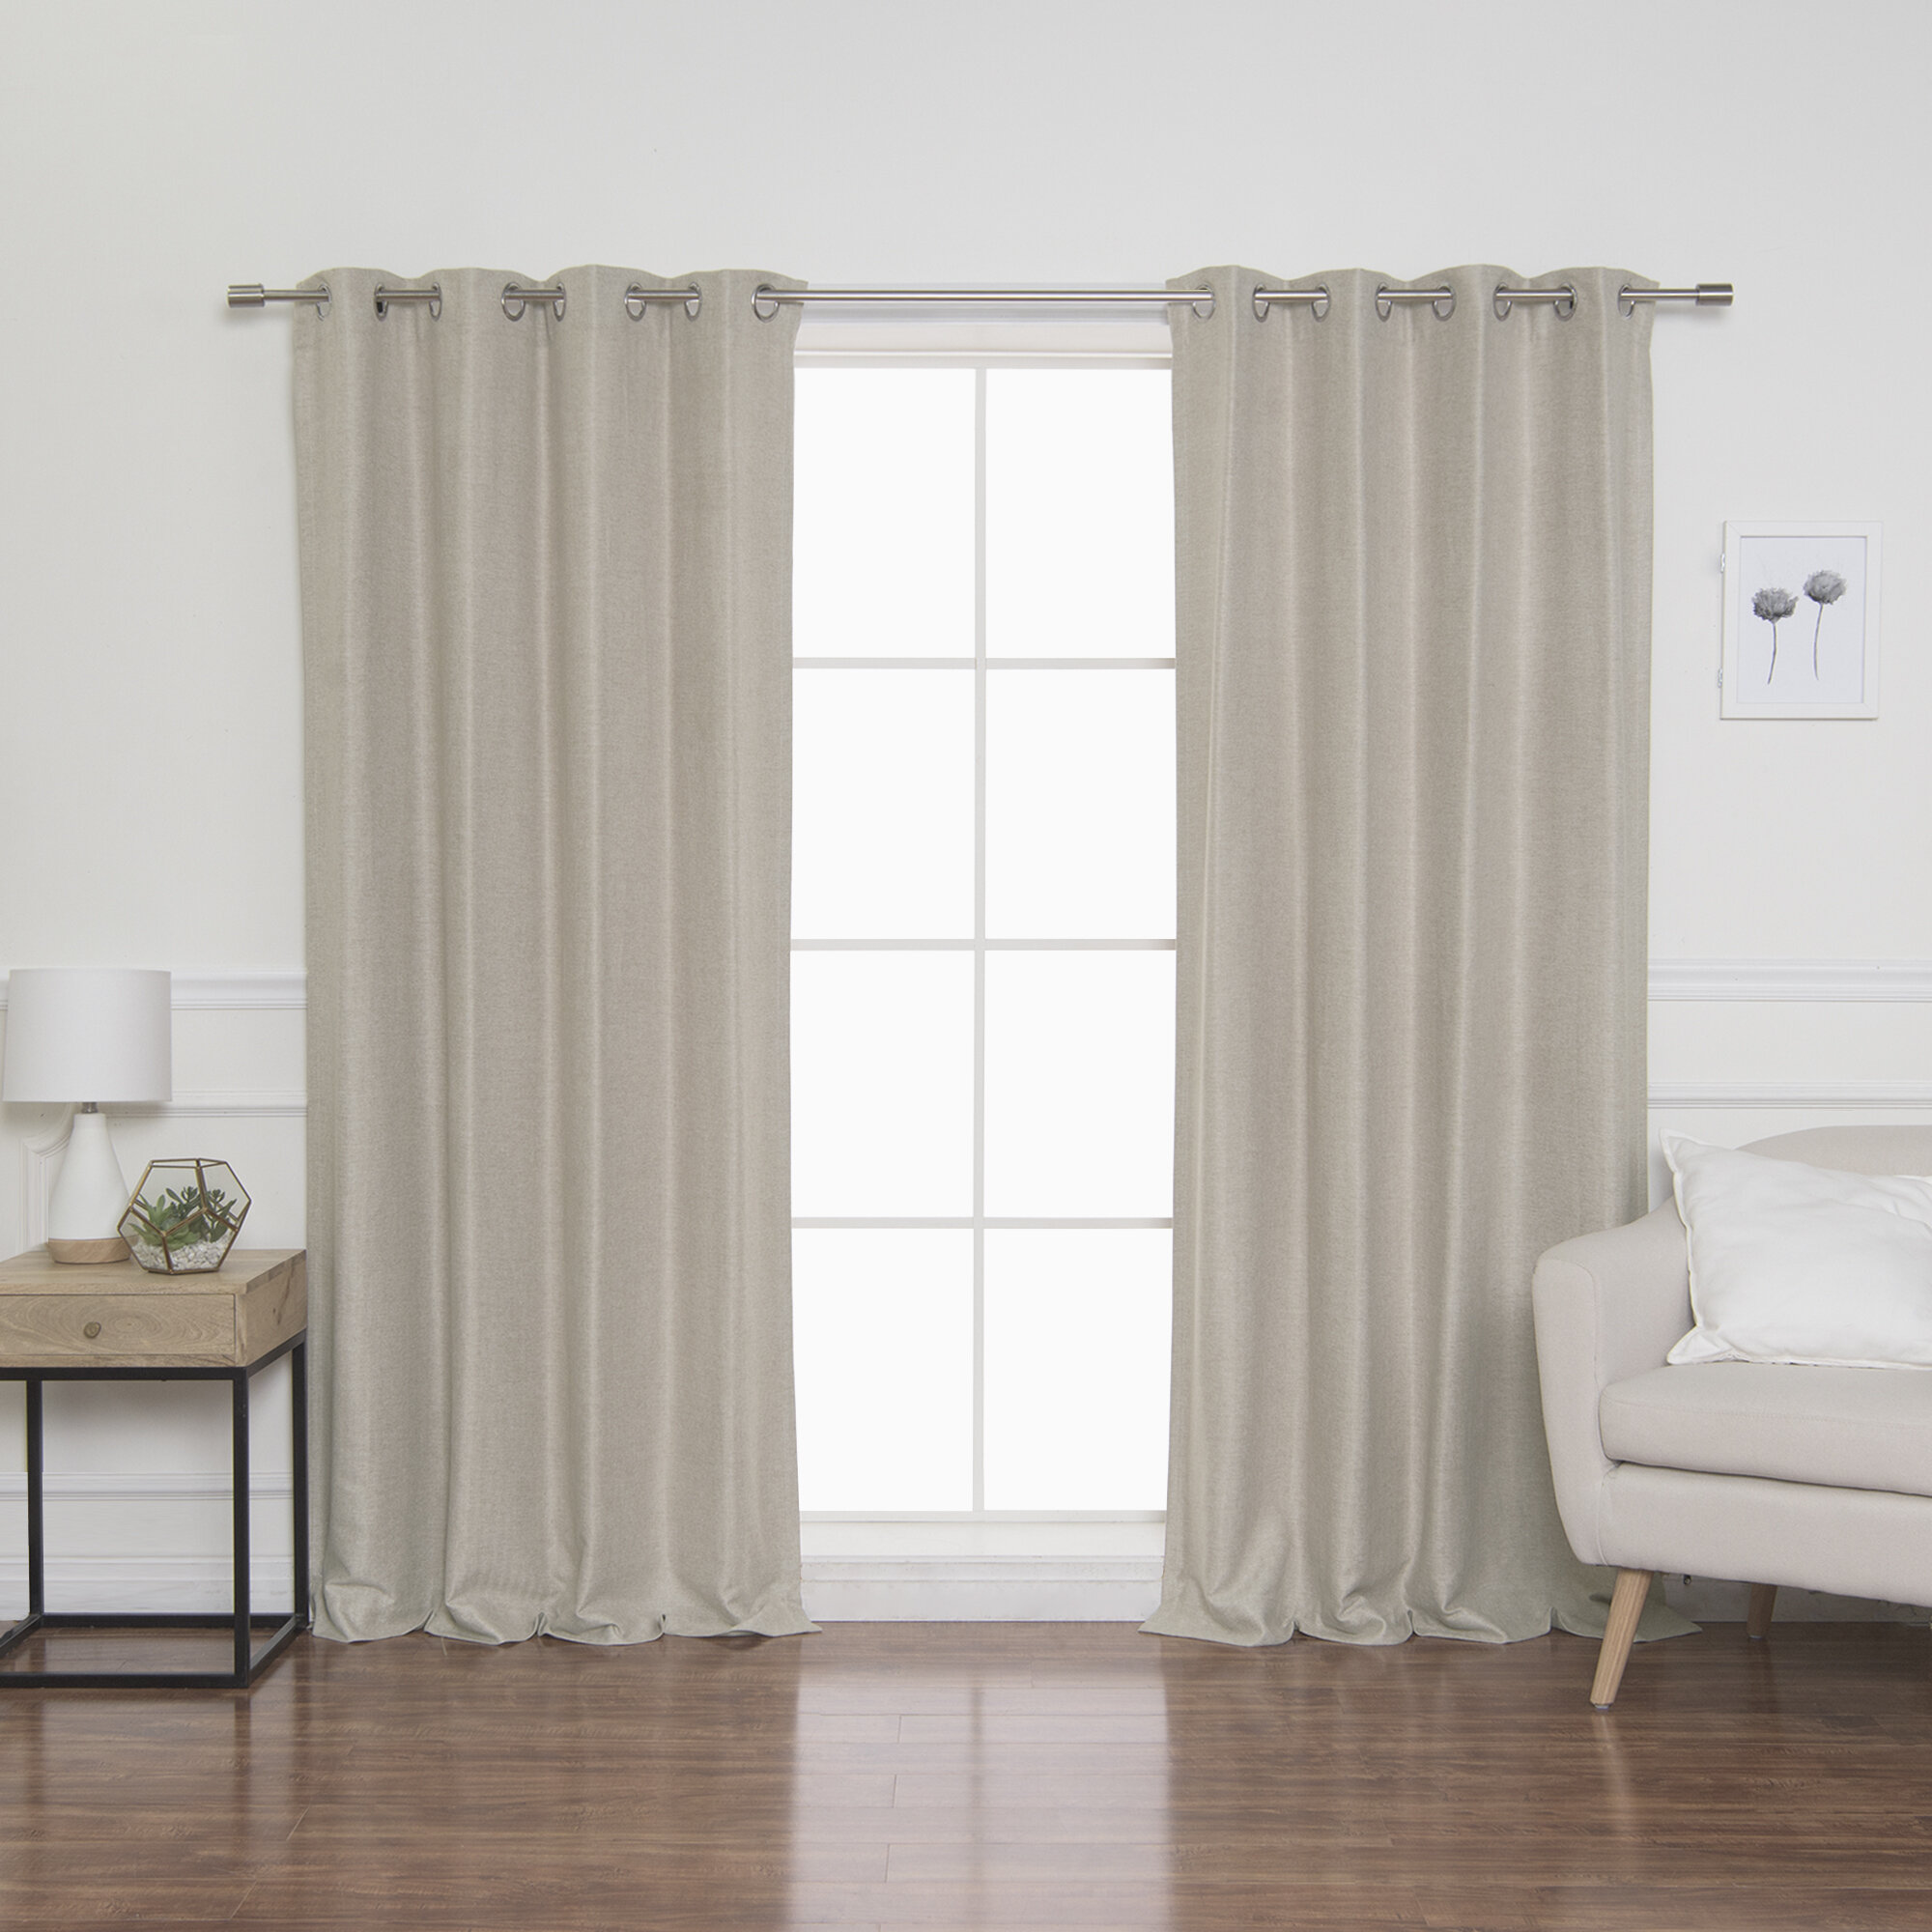 Beige Synthetic Curtains Drapes You Ll Love In 2021 Wayfair